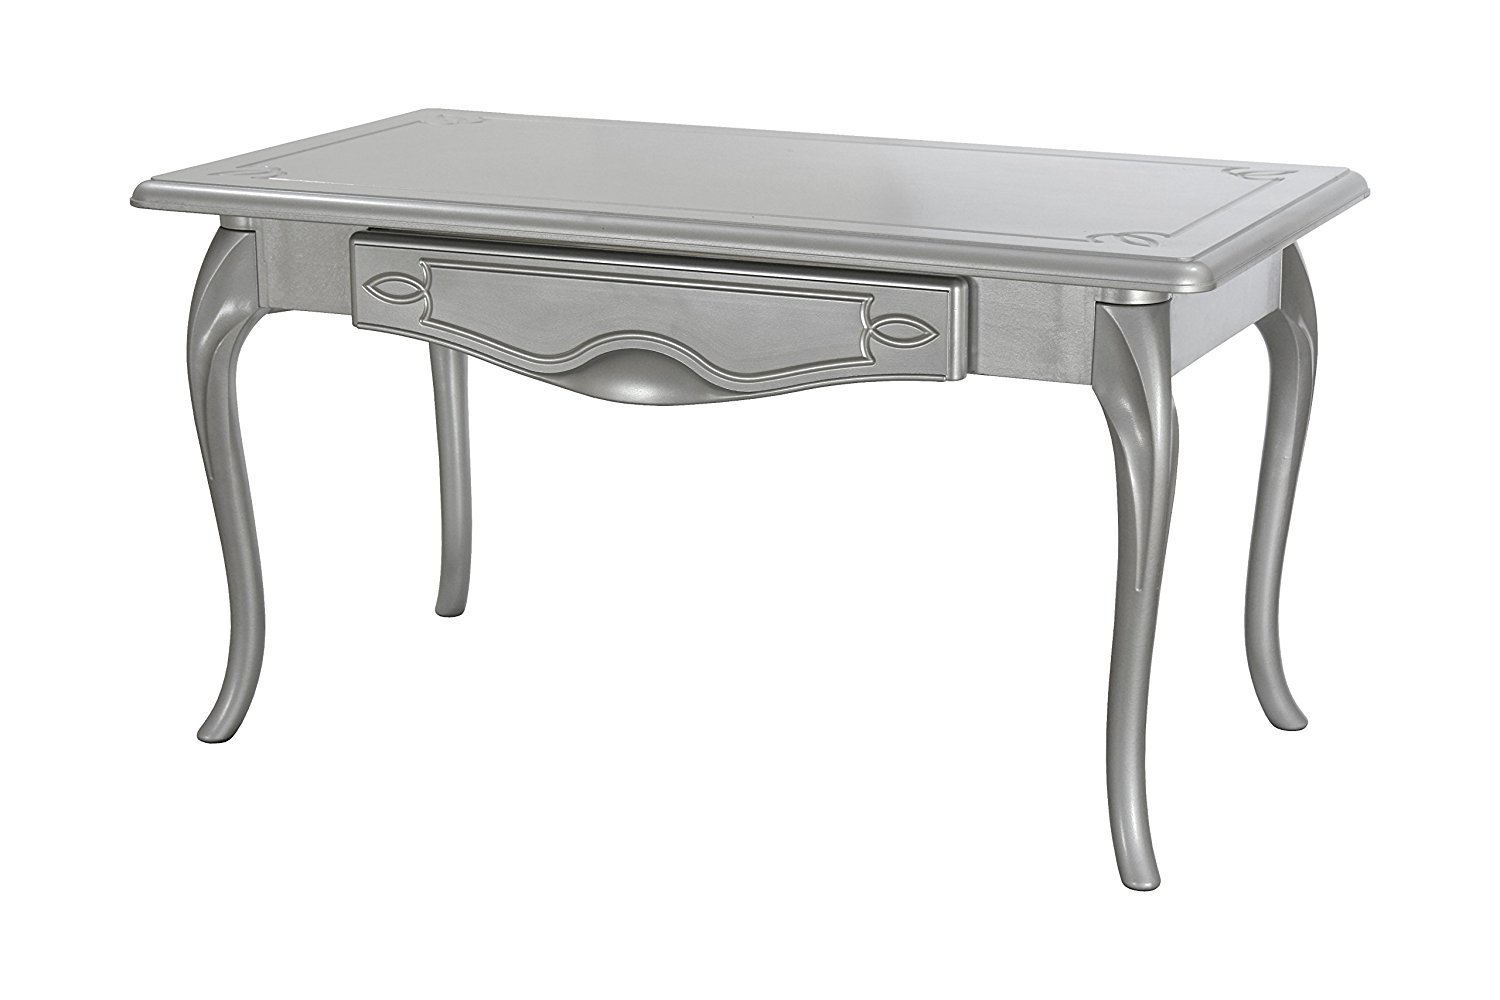 High Street Design Coffee Table with Cabriole legs and hand finished in Cream. 13254